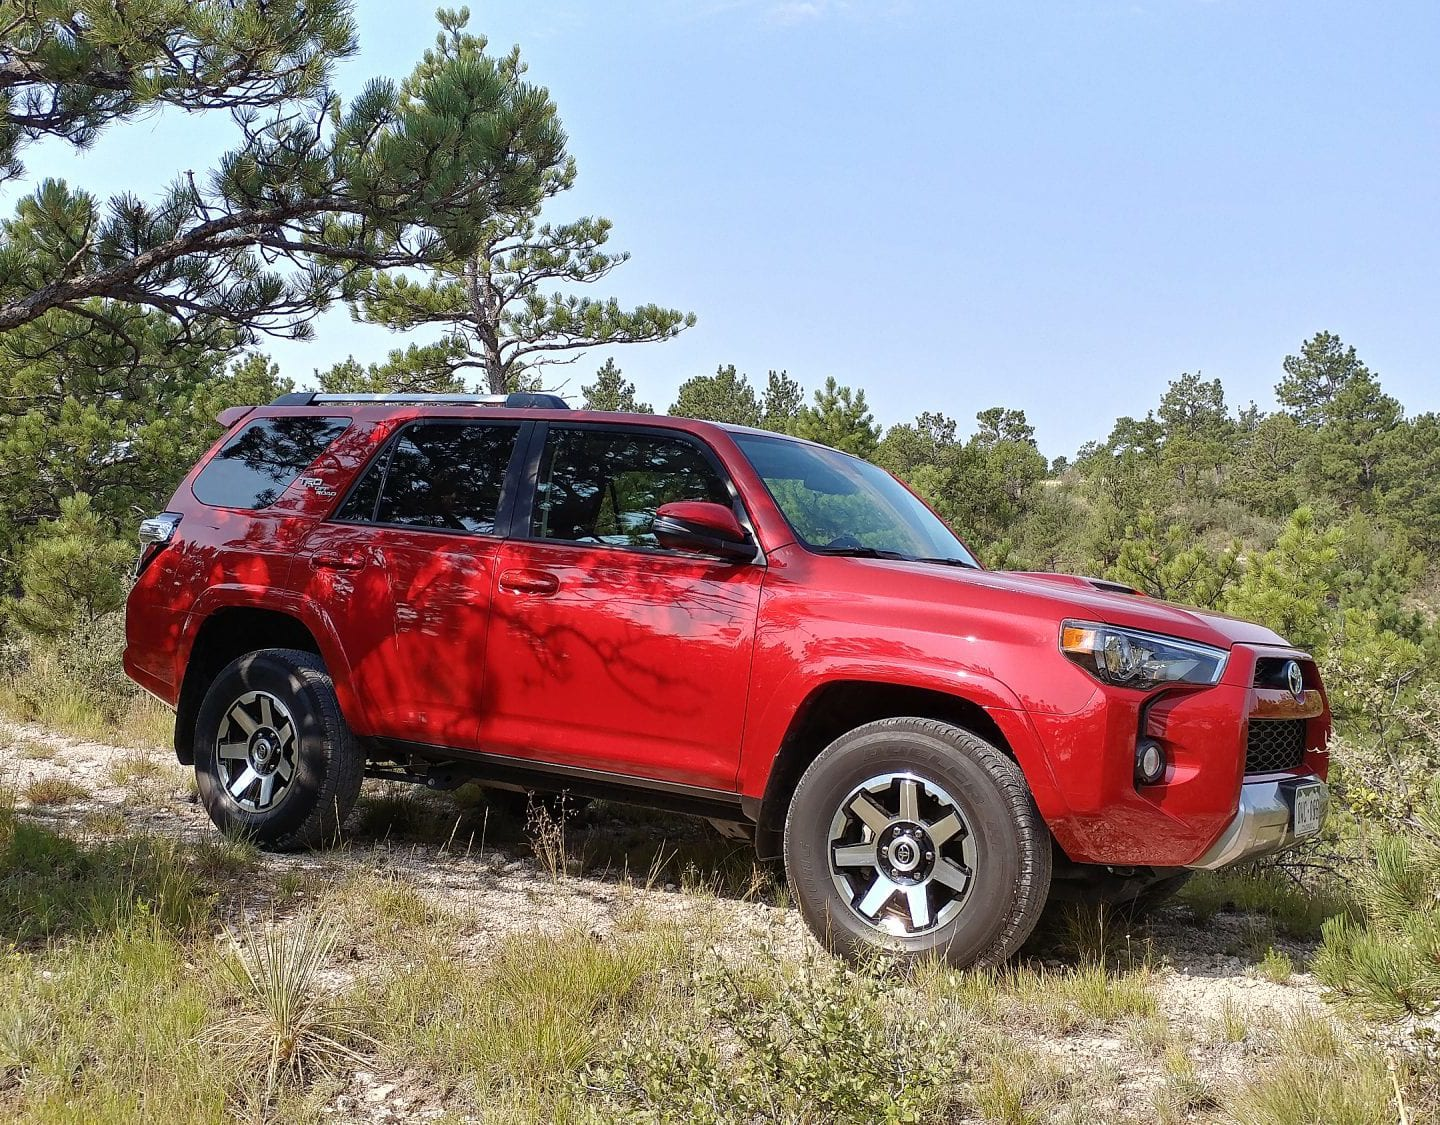 2018 Toyota 4Runner TRD Off Road Makes Sense of This SUV